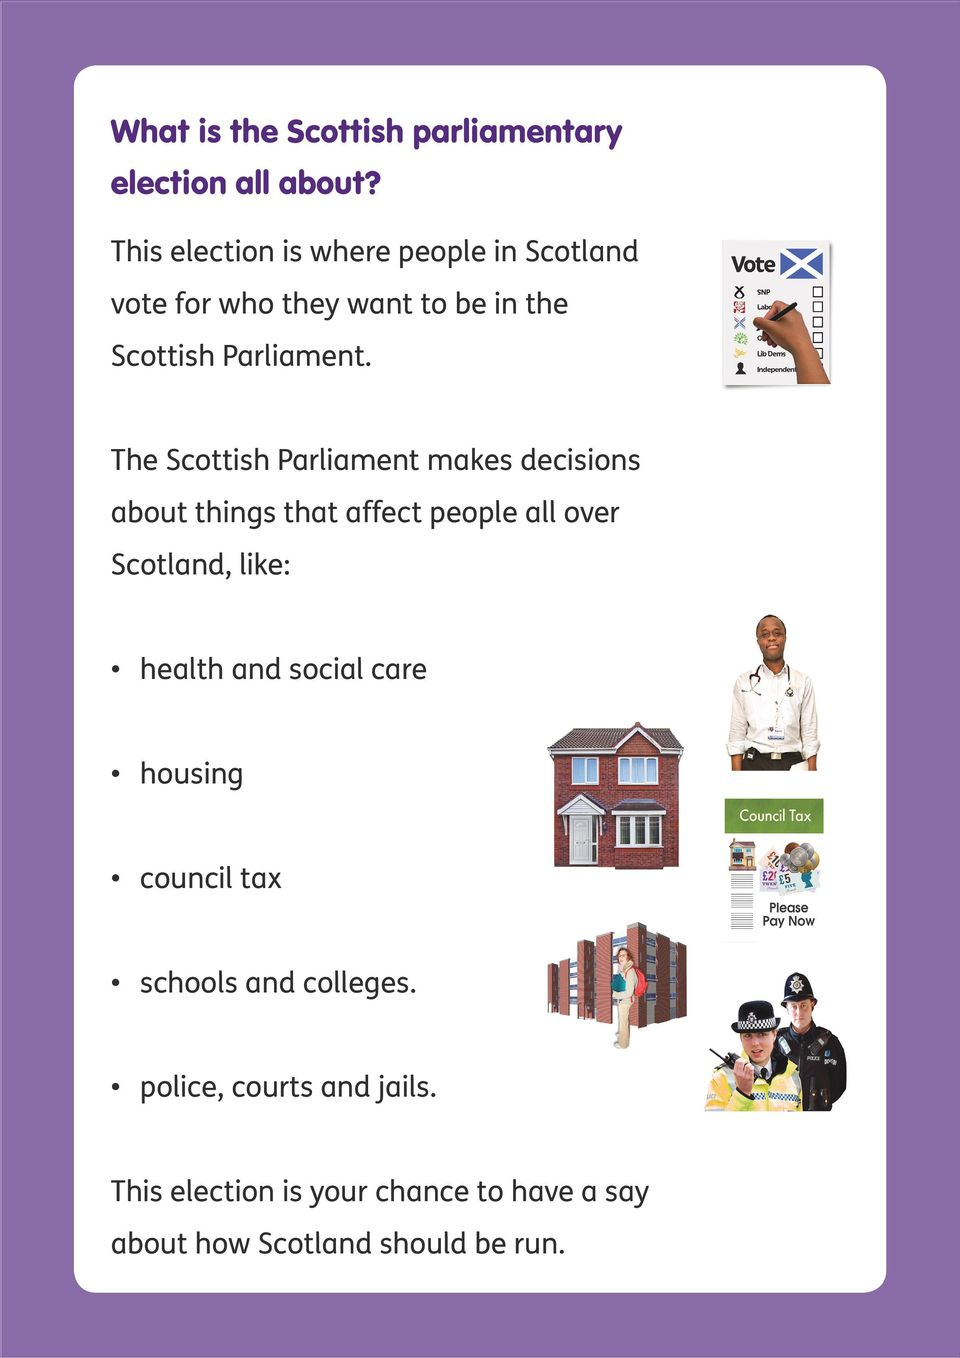 The Scottish Parliament makes decisions about things that affect people all over Scotland, like: health